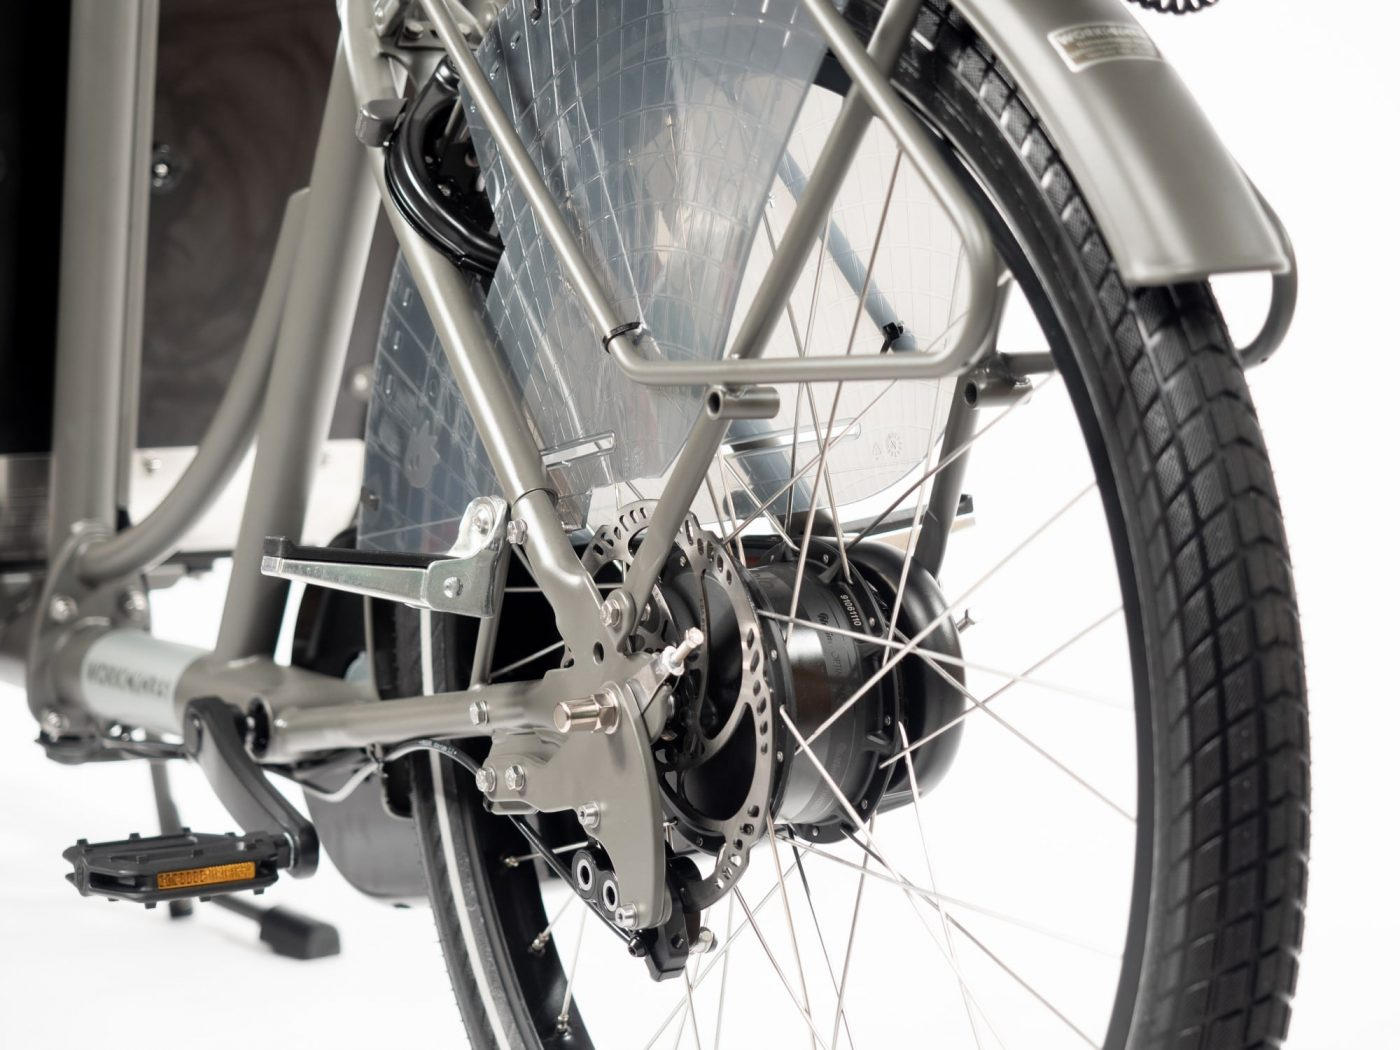 Internal hub gears offer foolproof shifting even while stopped, require minimal maintenance and are out of harm's way. Paired with either Shimano roller brakes front and rear, a rear coaster brake or Magura hydraulic disc brakes